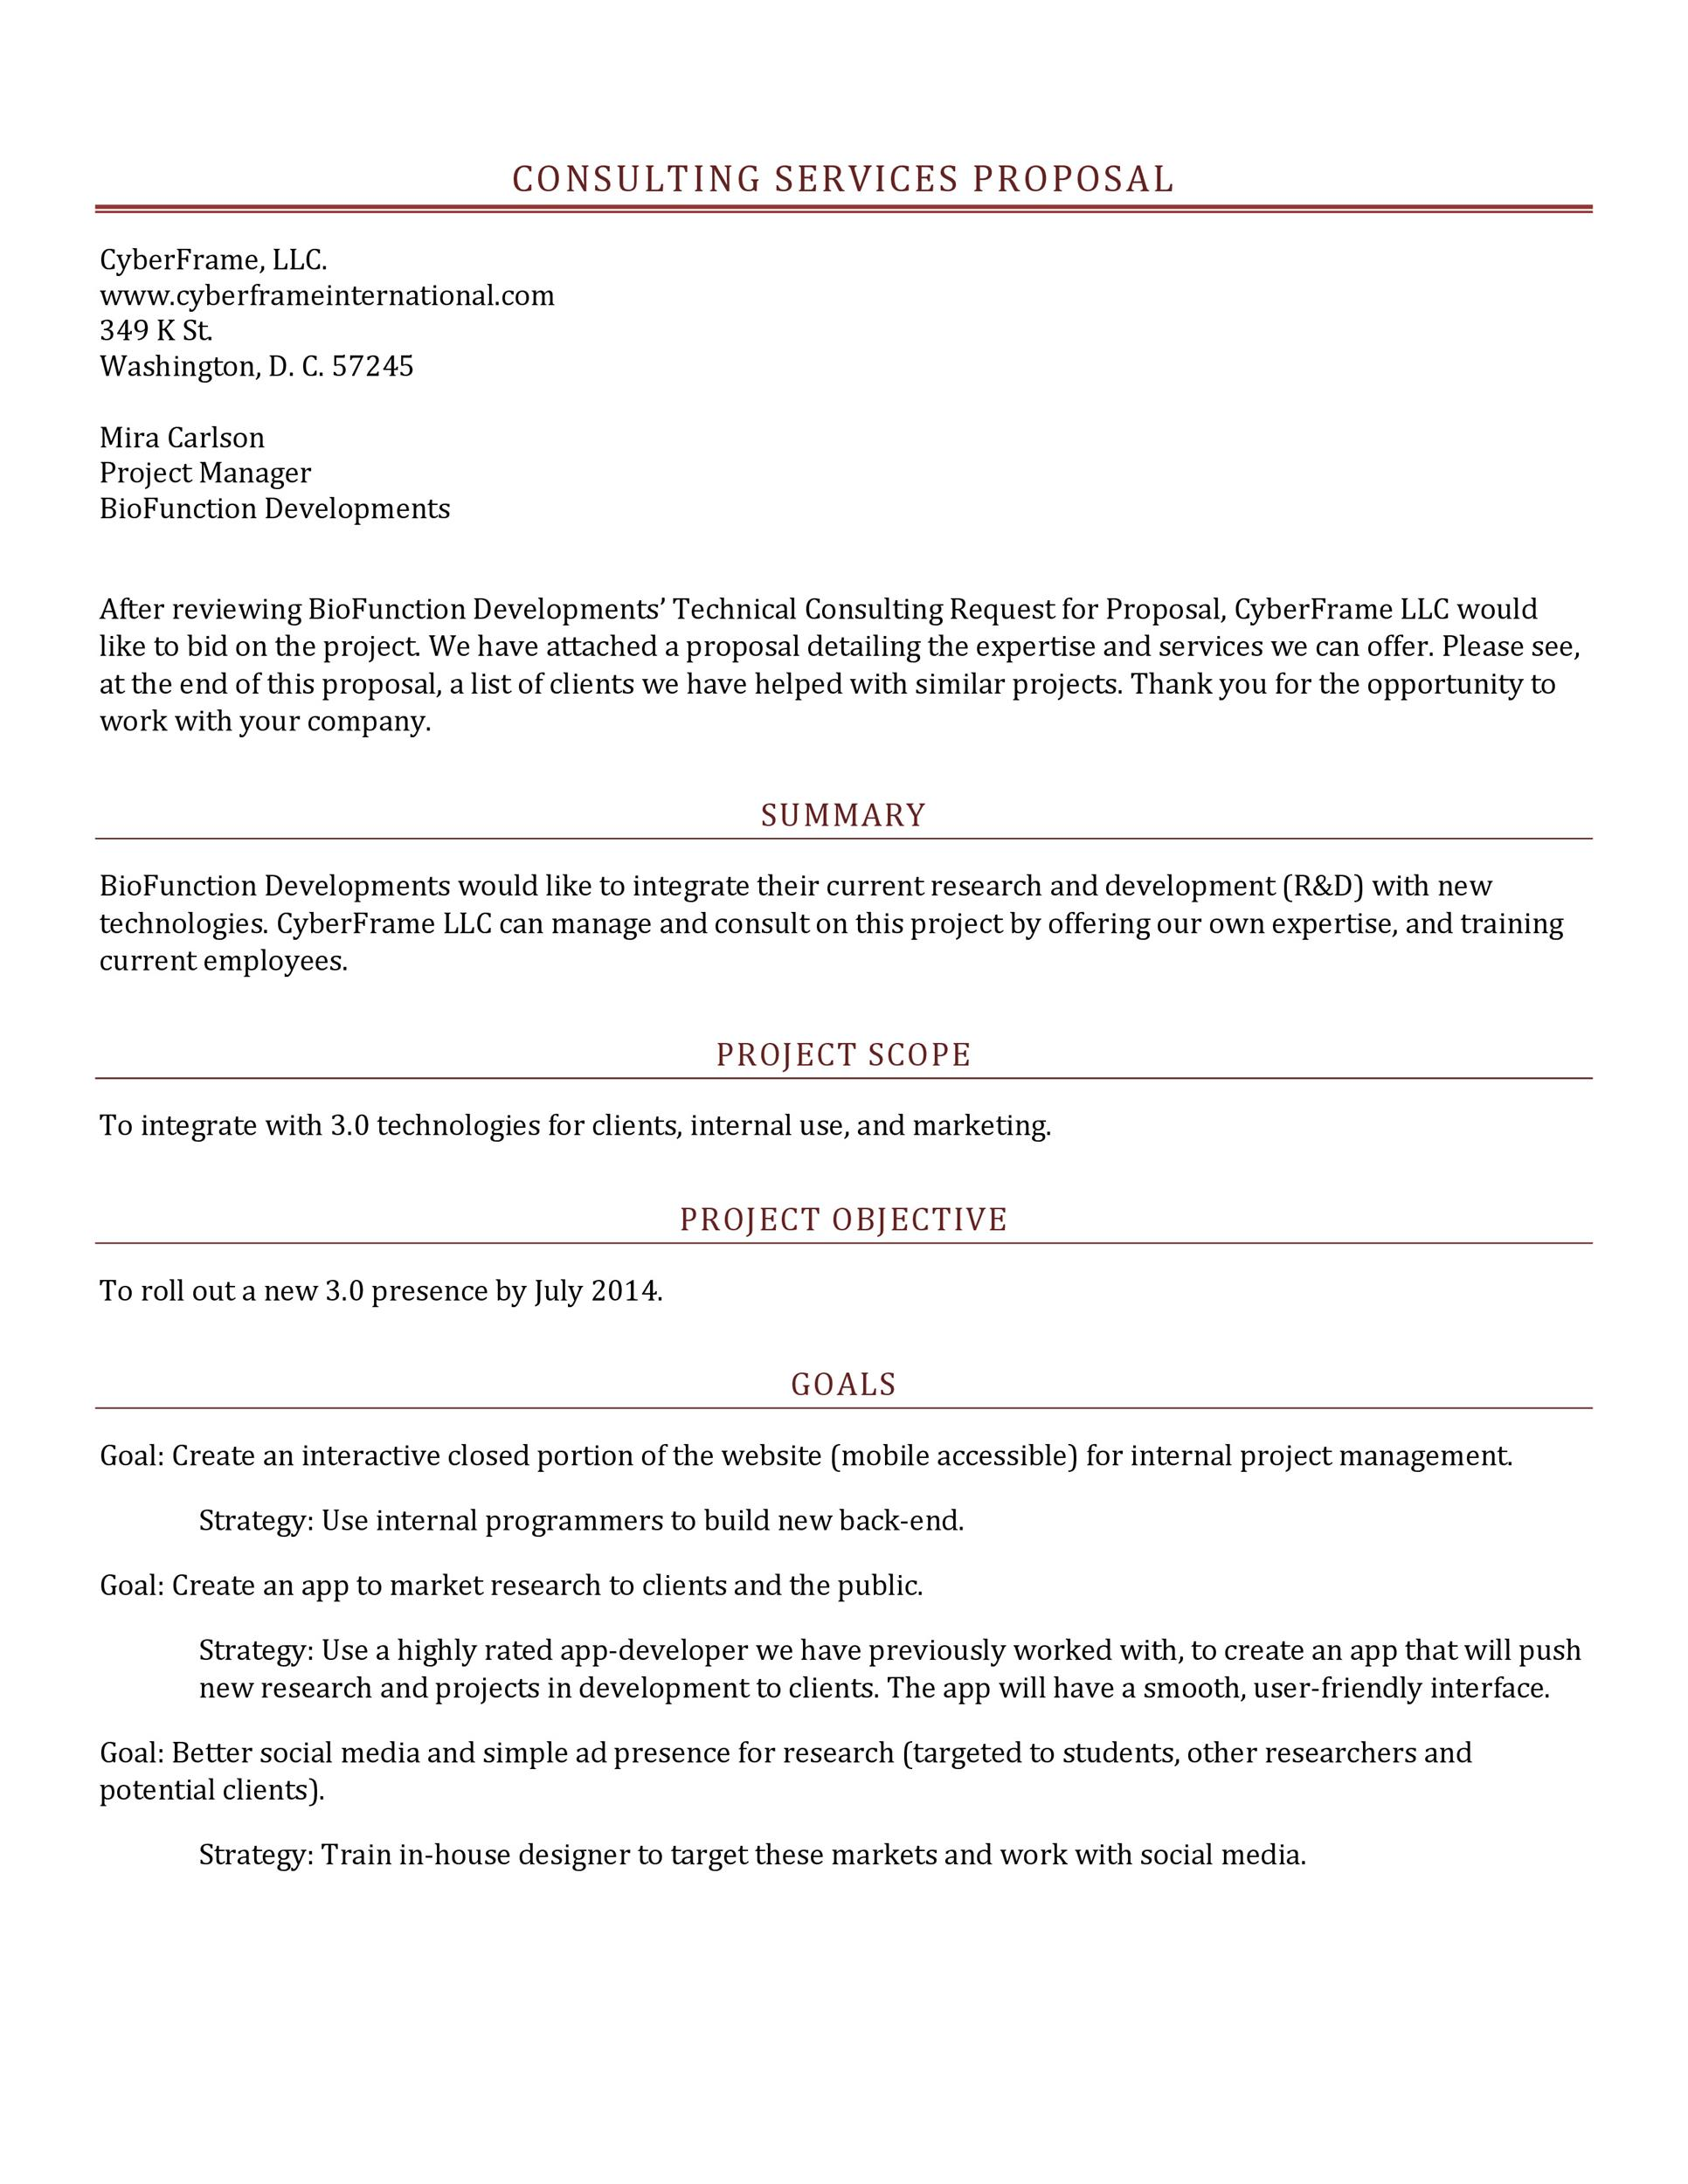 39 Best Consulting Proposal Templates Free Template Lab